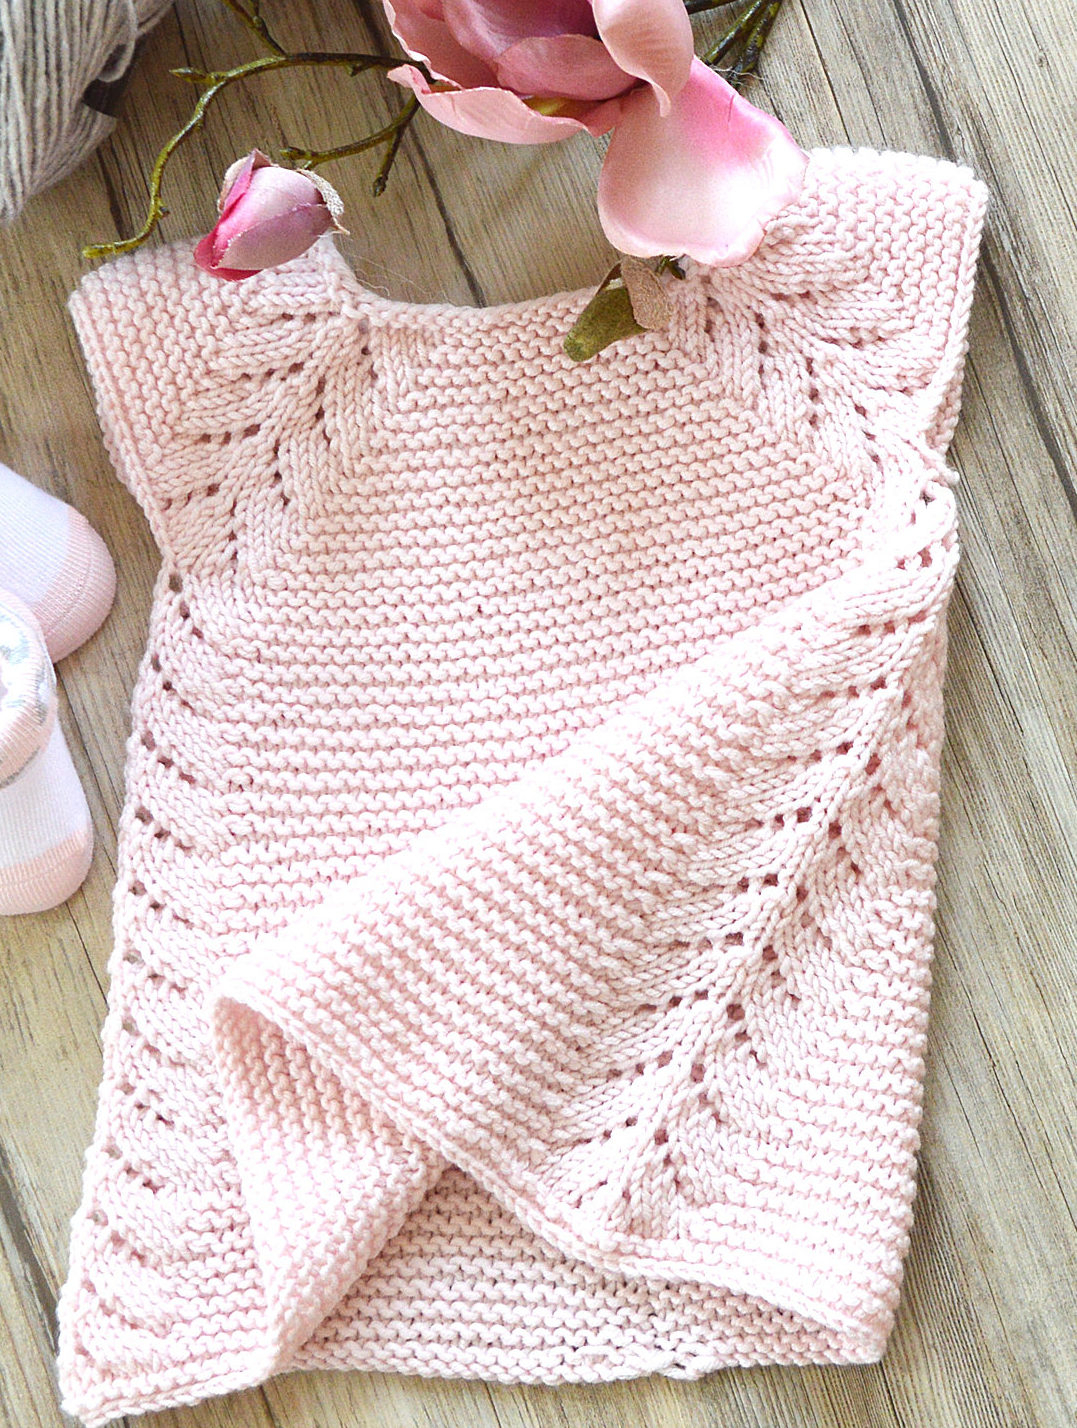 Knitting Patterns Designs Dresses And Skirts For Babies And Children Knitting Patterns In